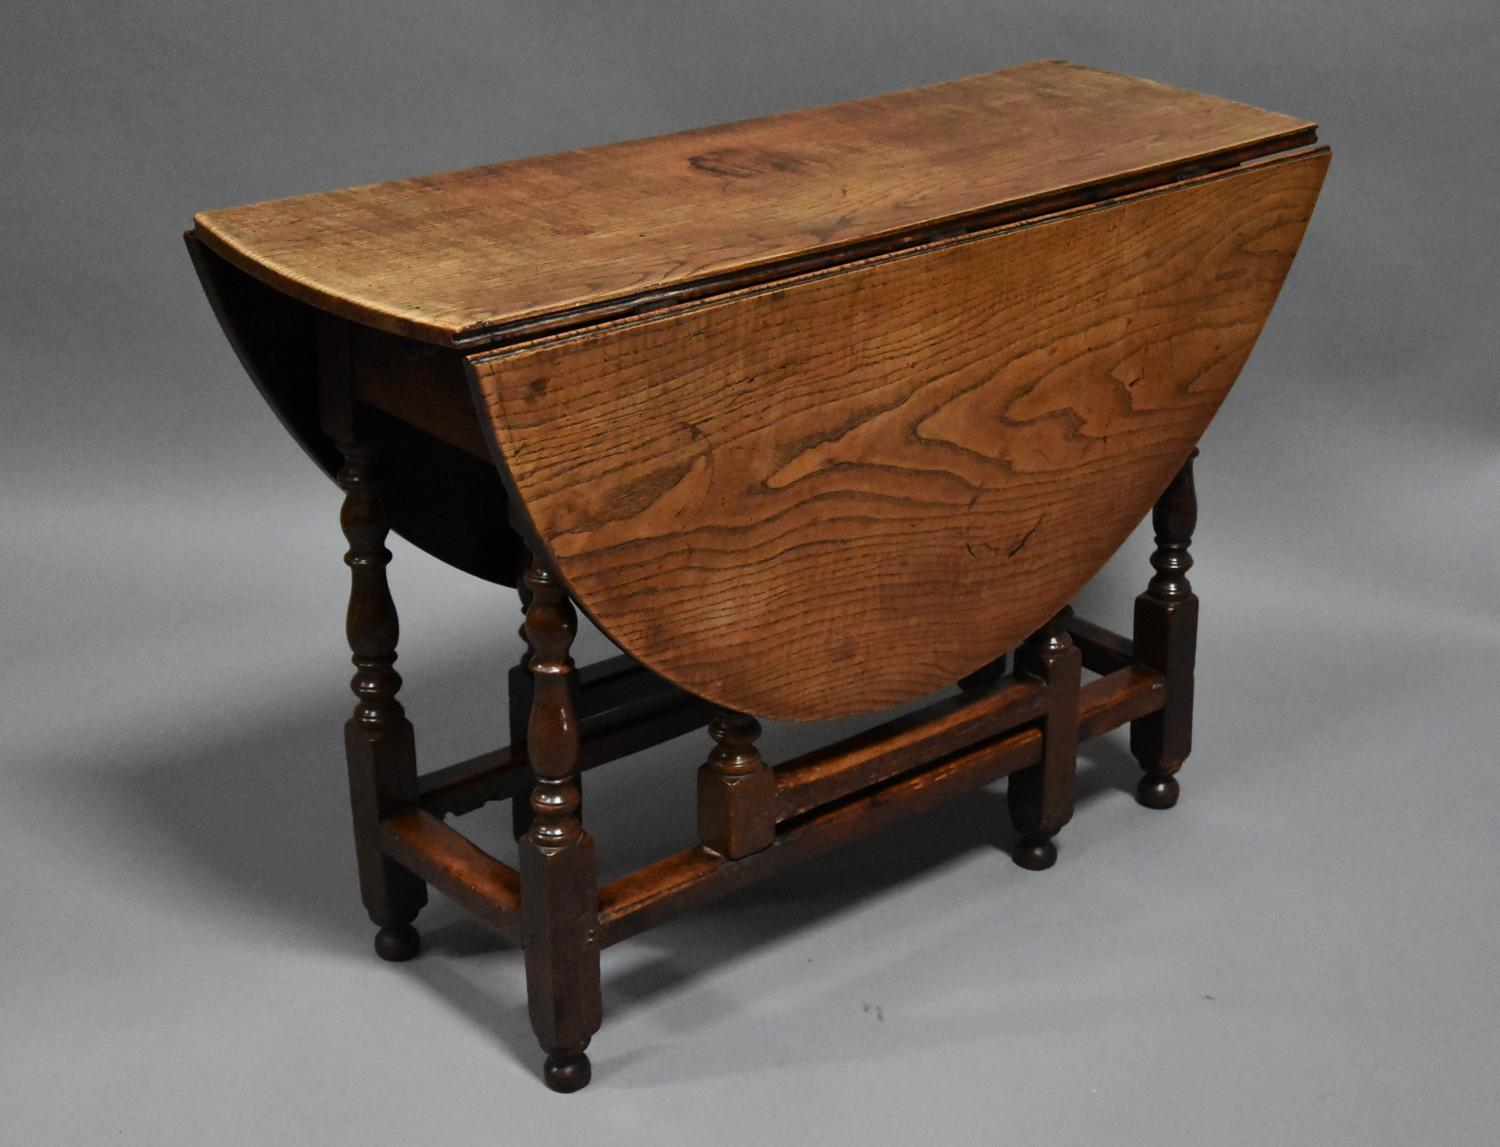 Early 18thc oak and ash oval gateleg table